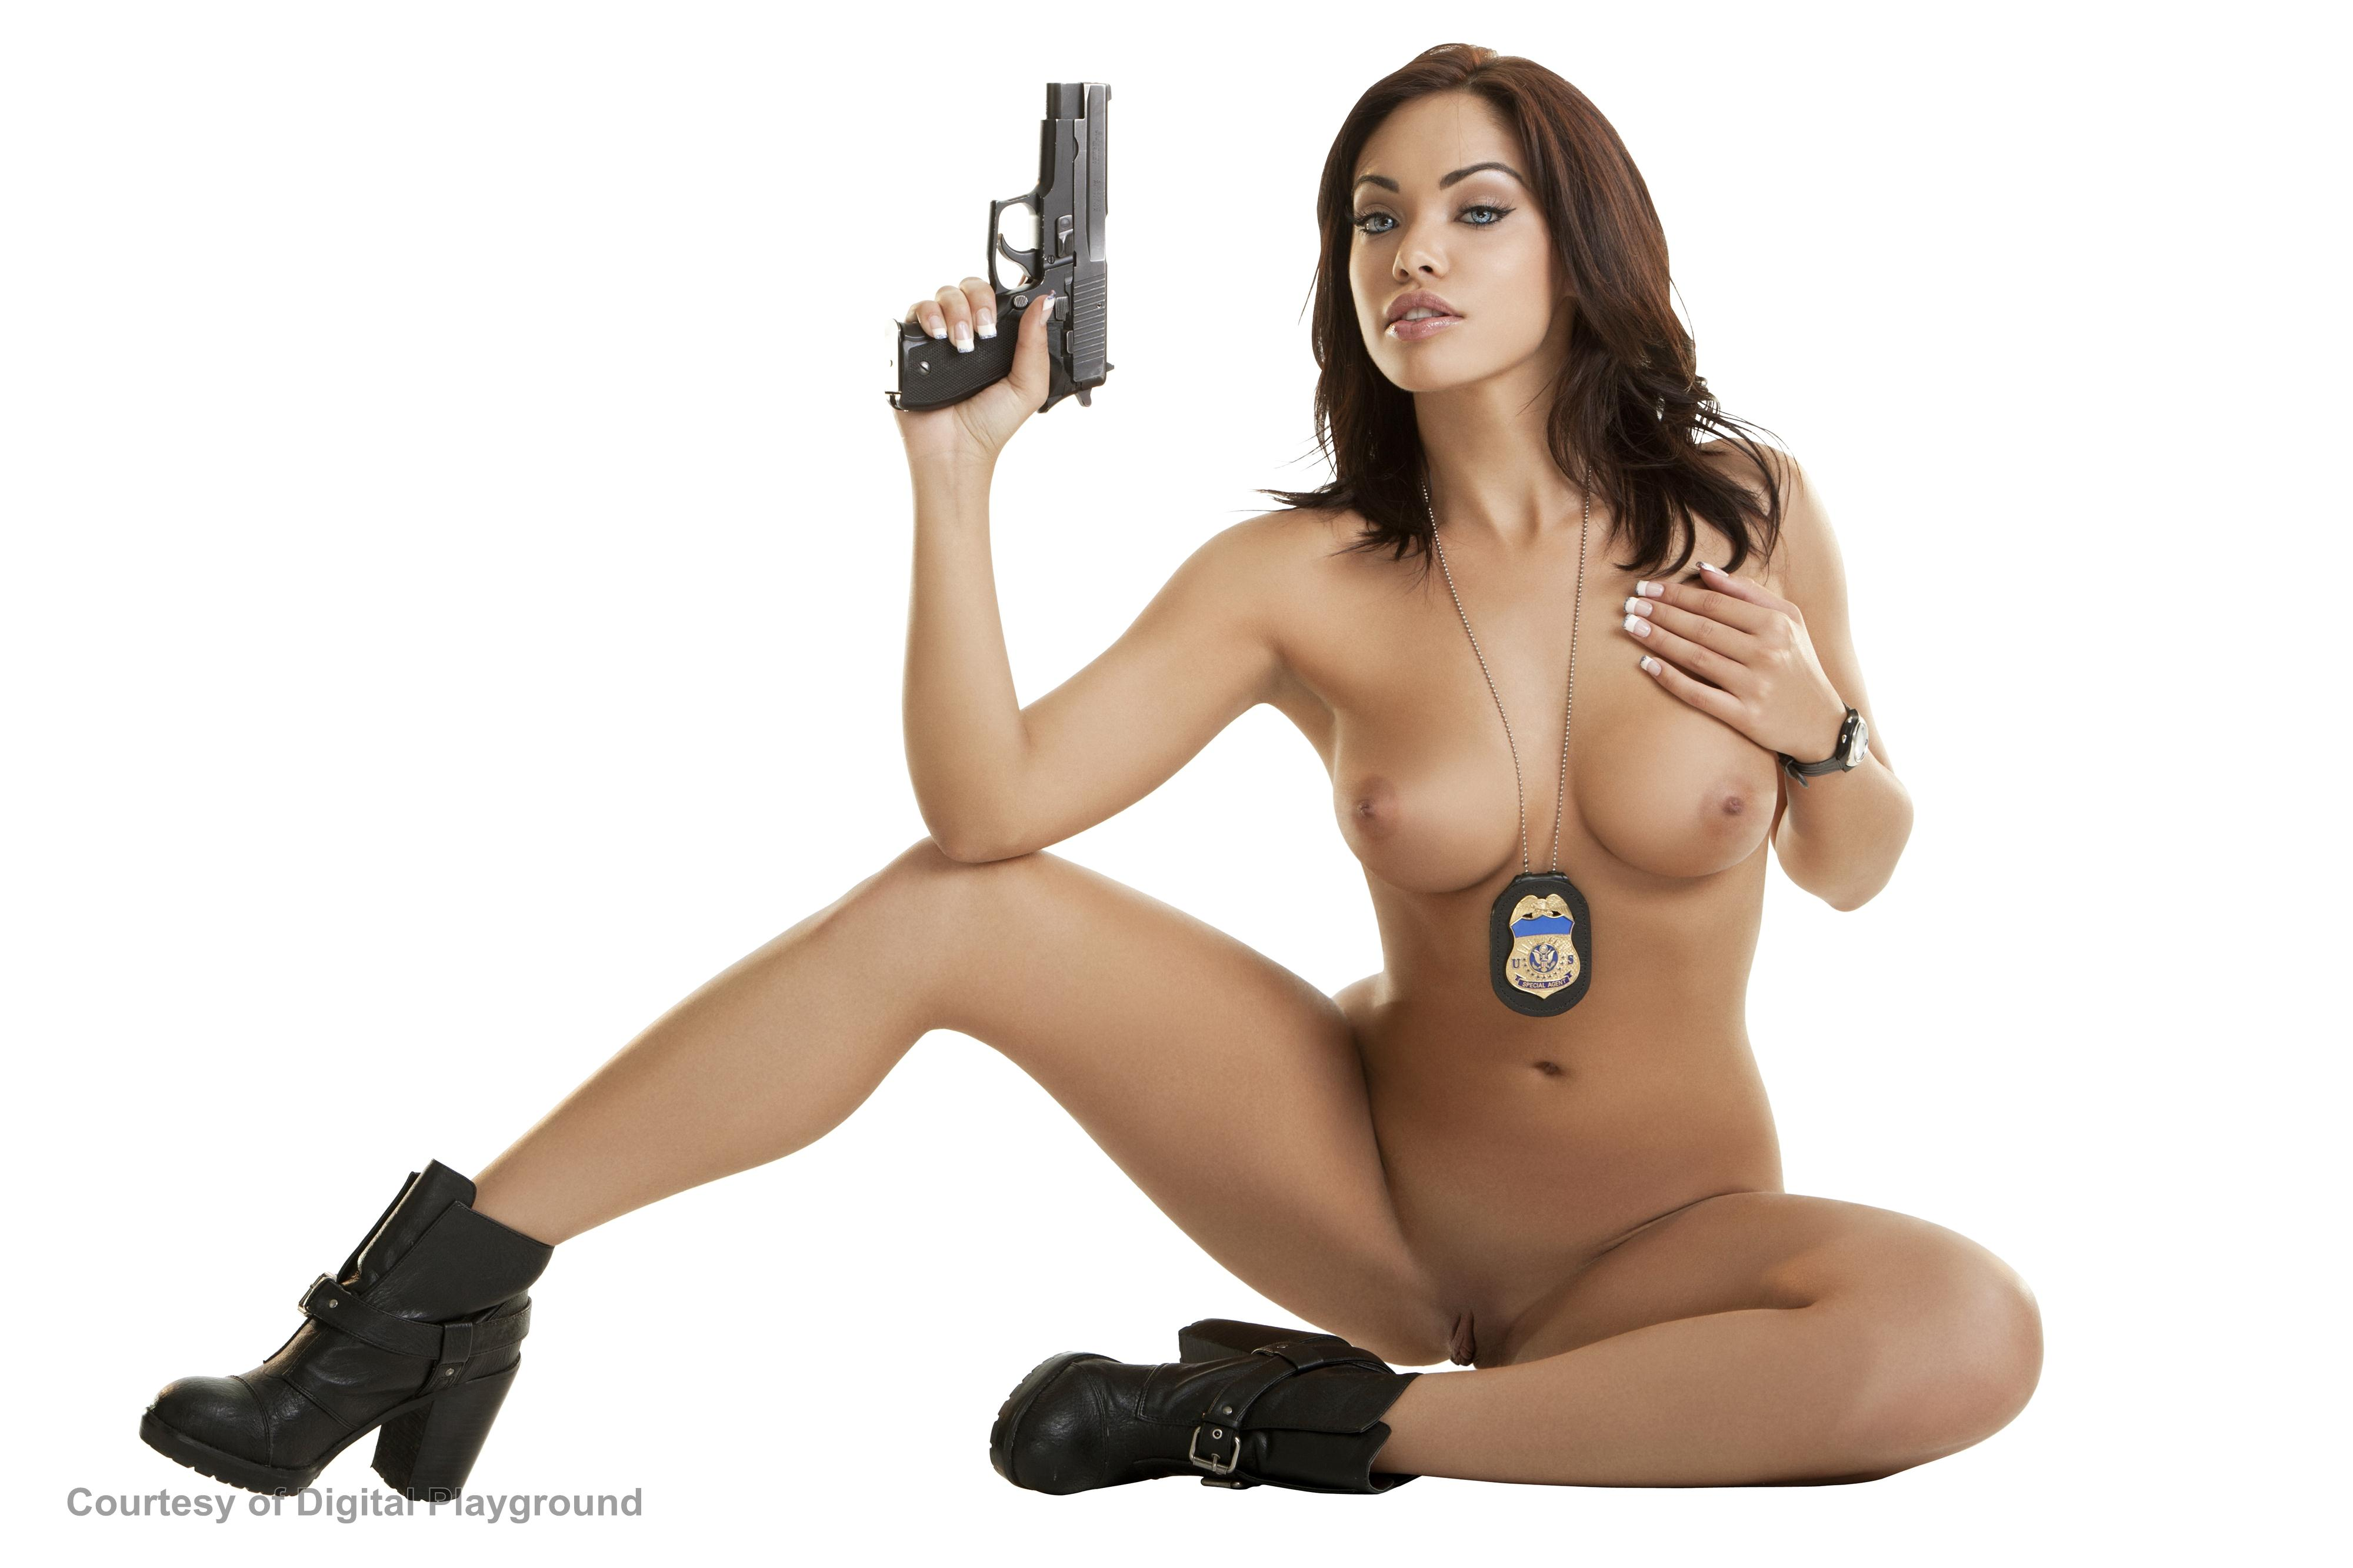 Necessary phrase... Guns and nude girls really